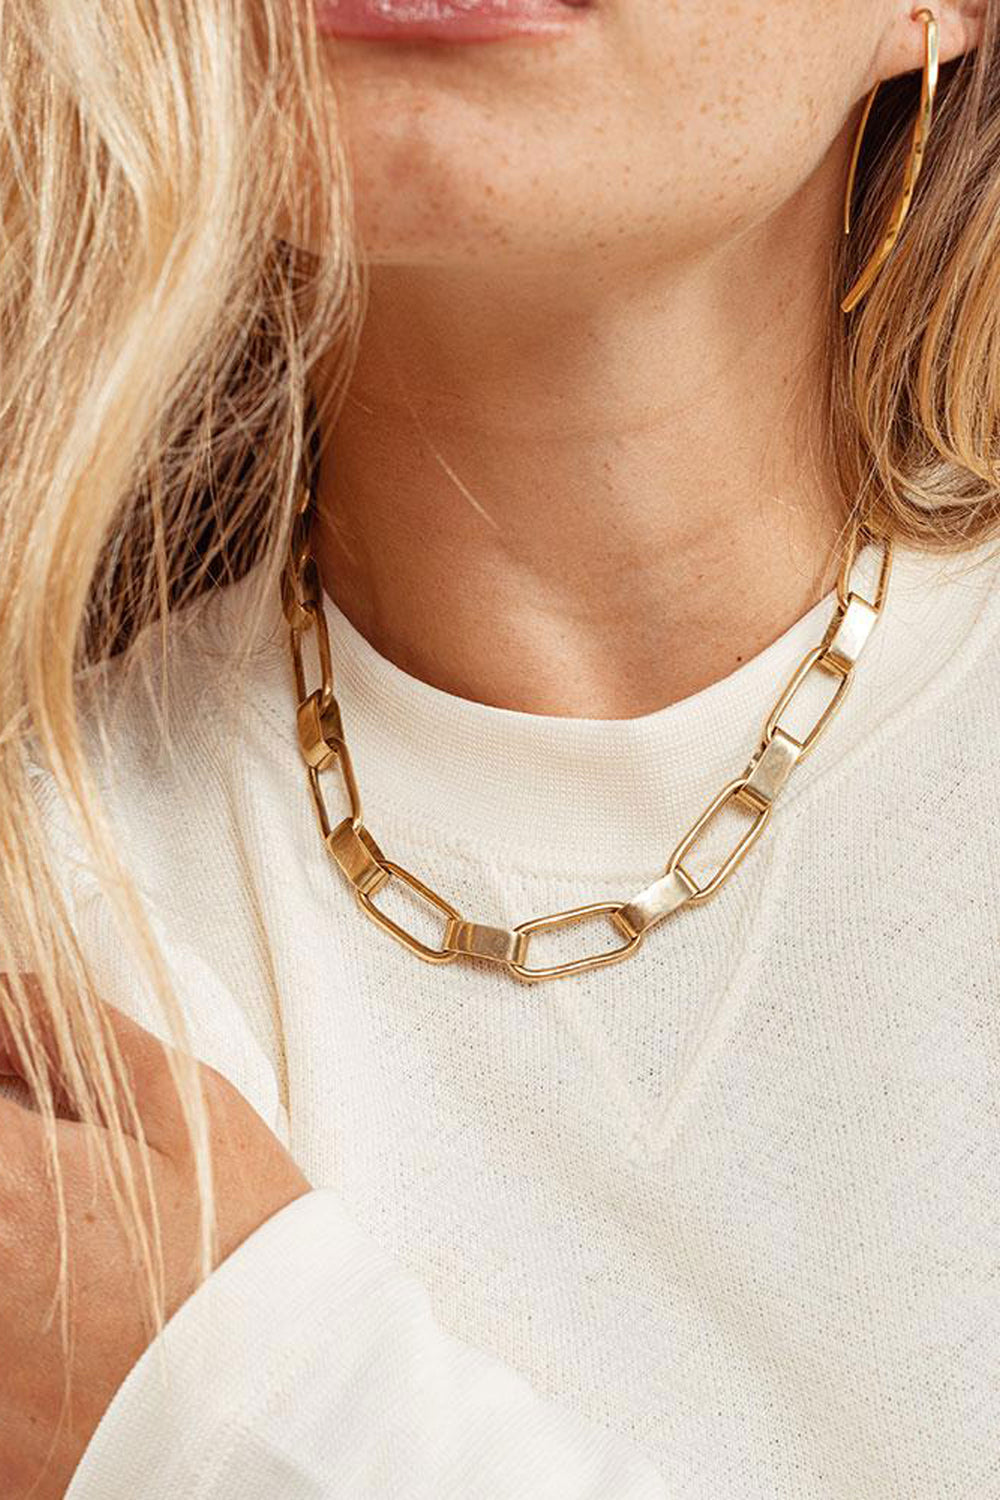 Soko Capsule Collar Necklace - Whimsy & Row